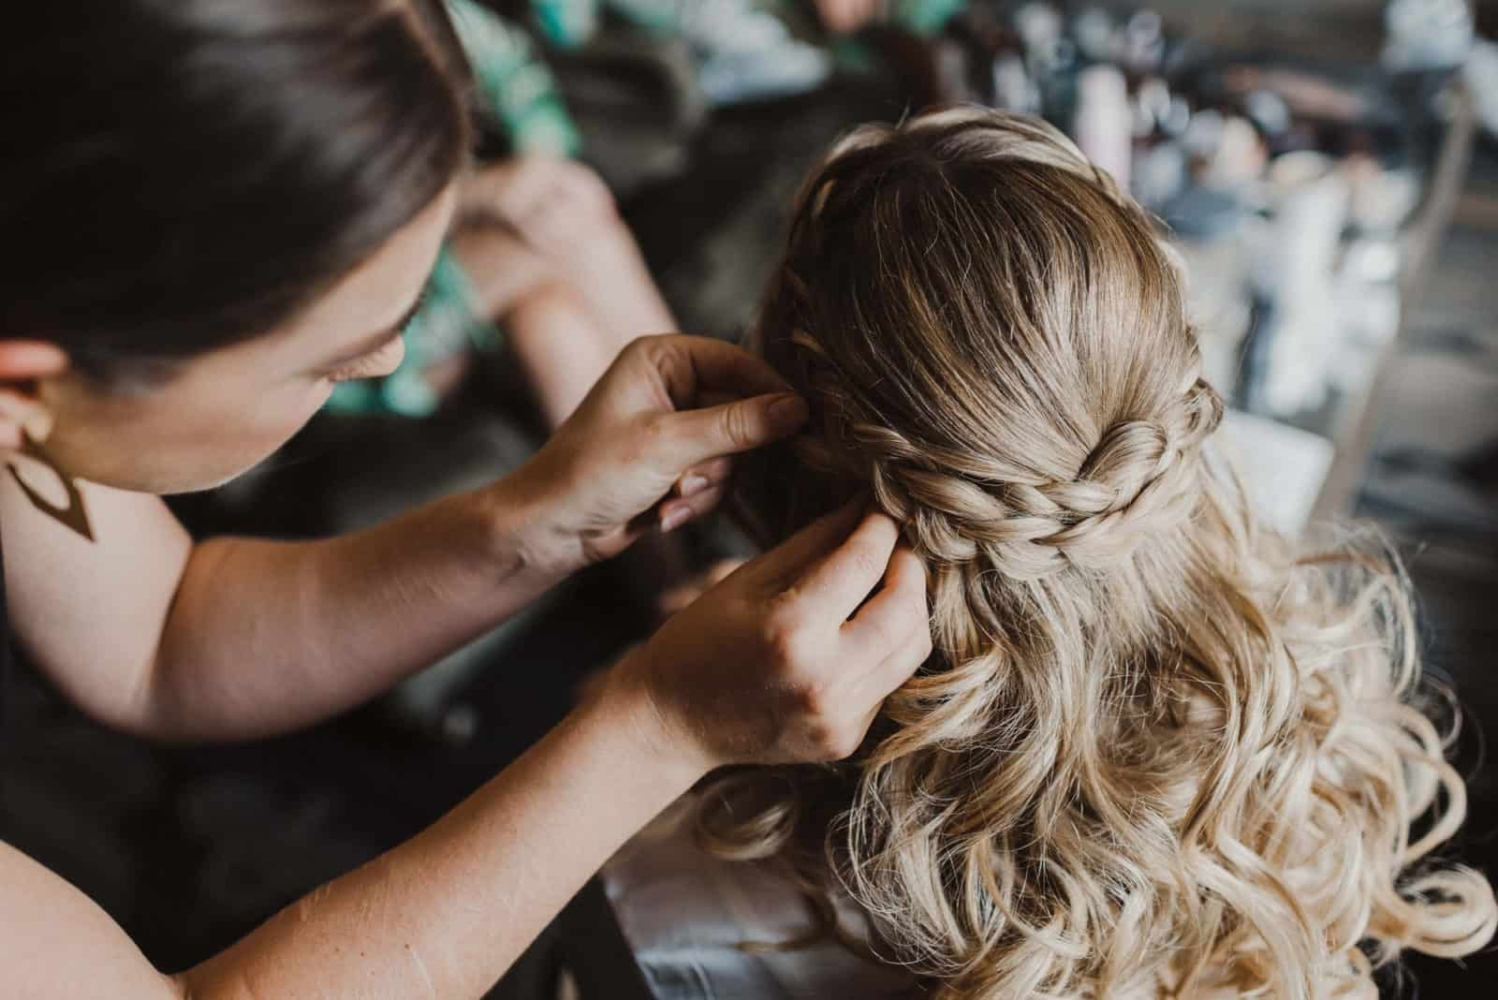 hairstylist braiding bride's hair